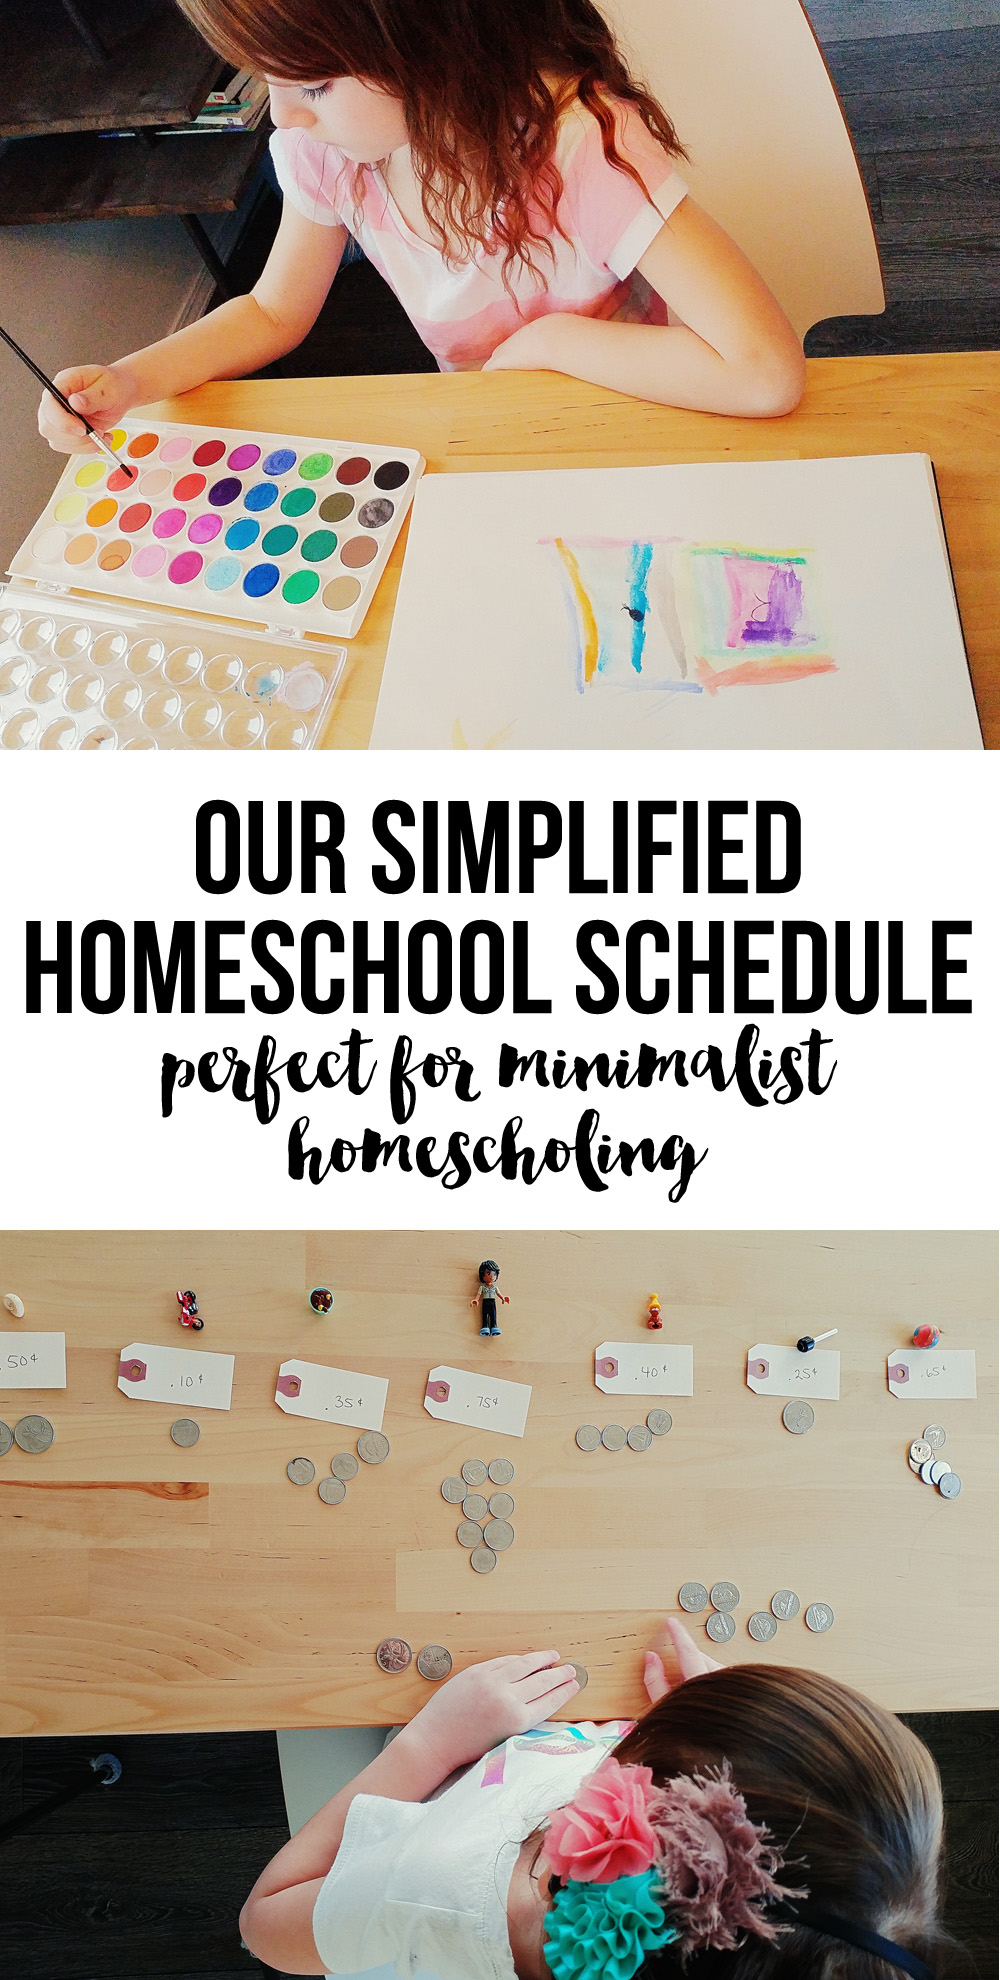 Our Simplified Weekly Homeschool Schedule - minimalist homeschooling